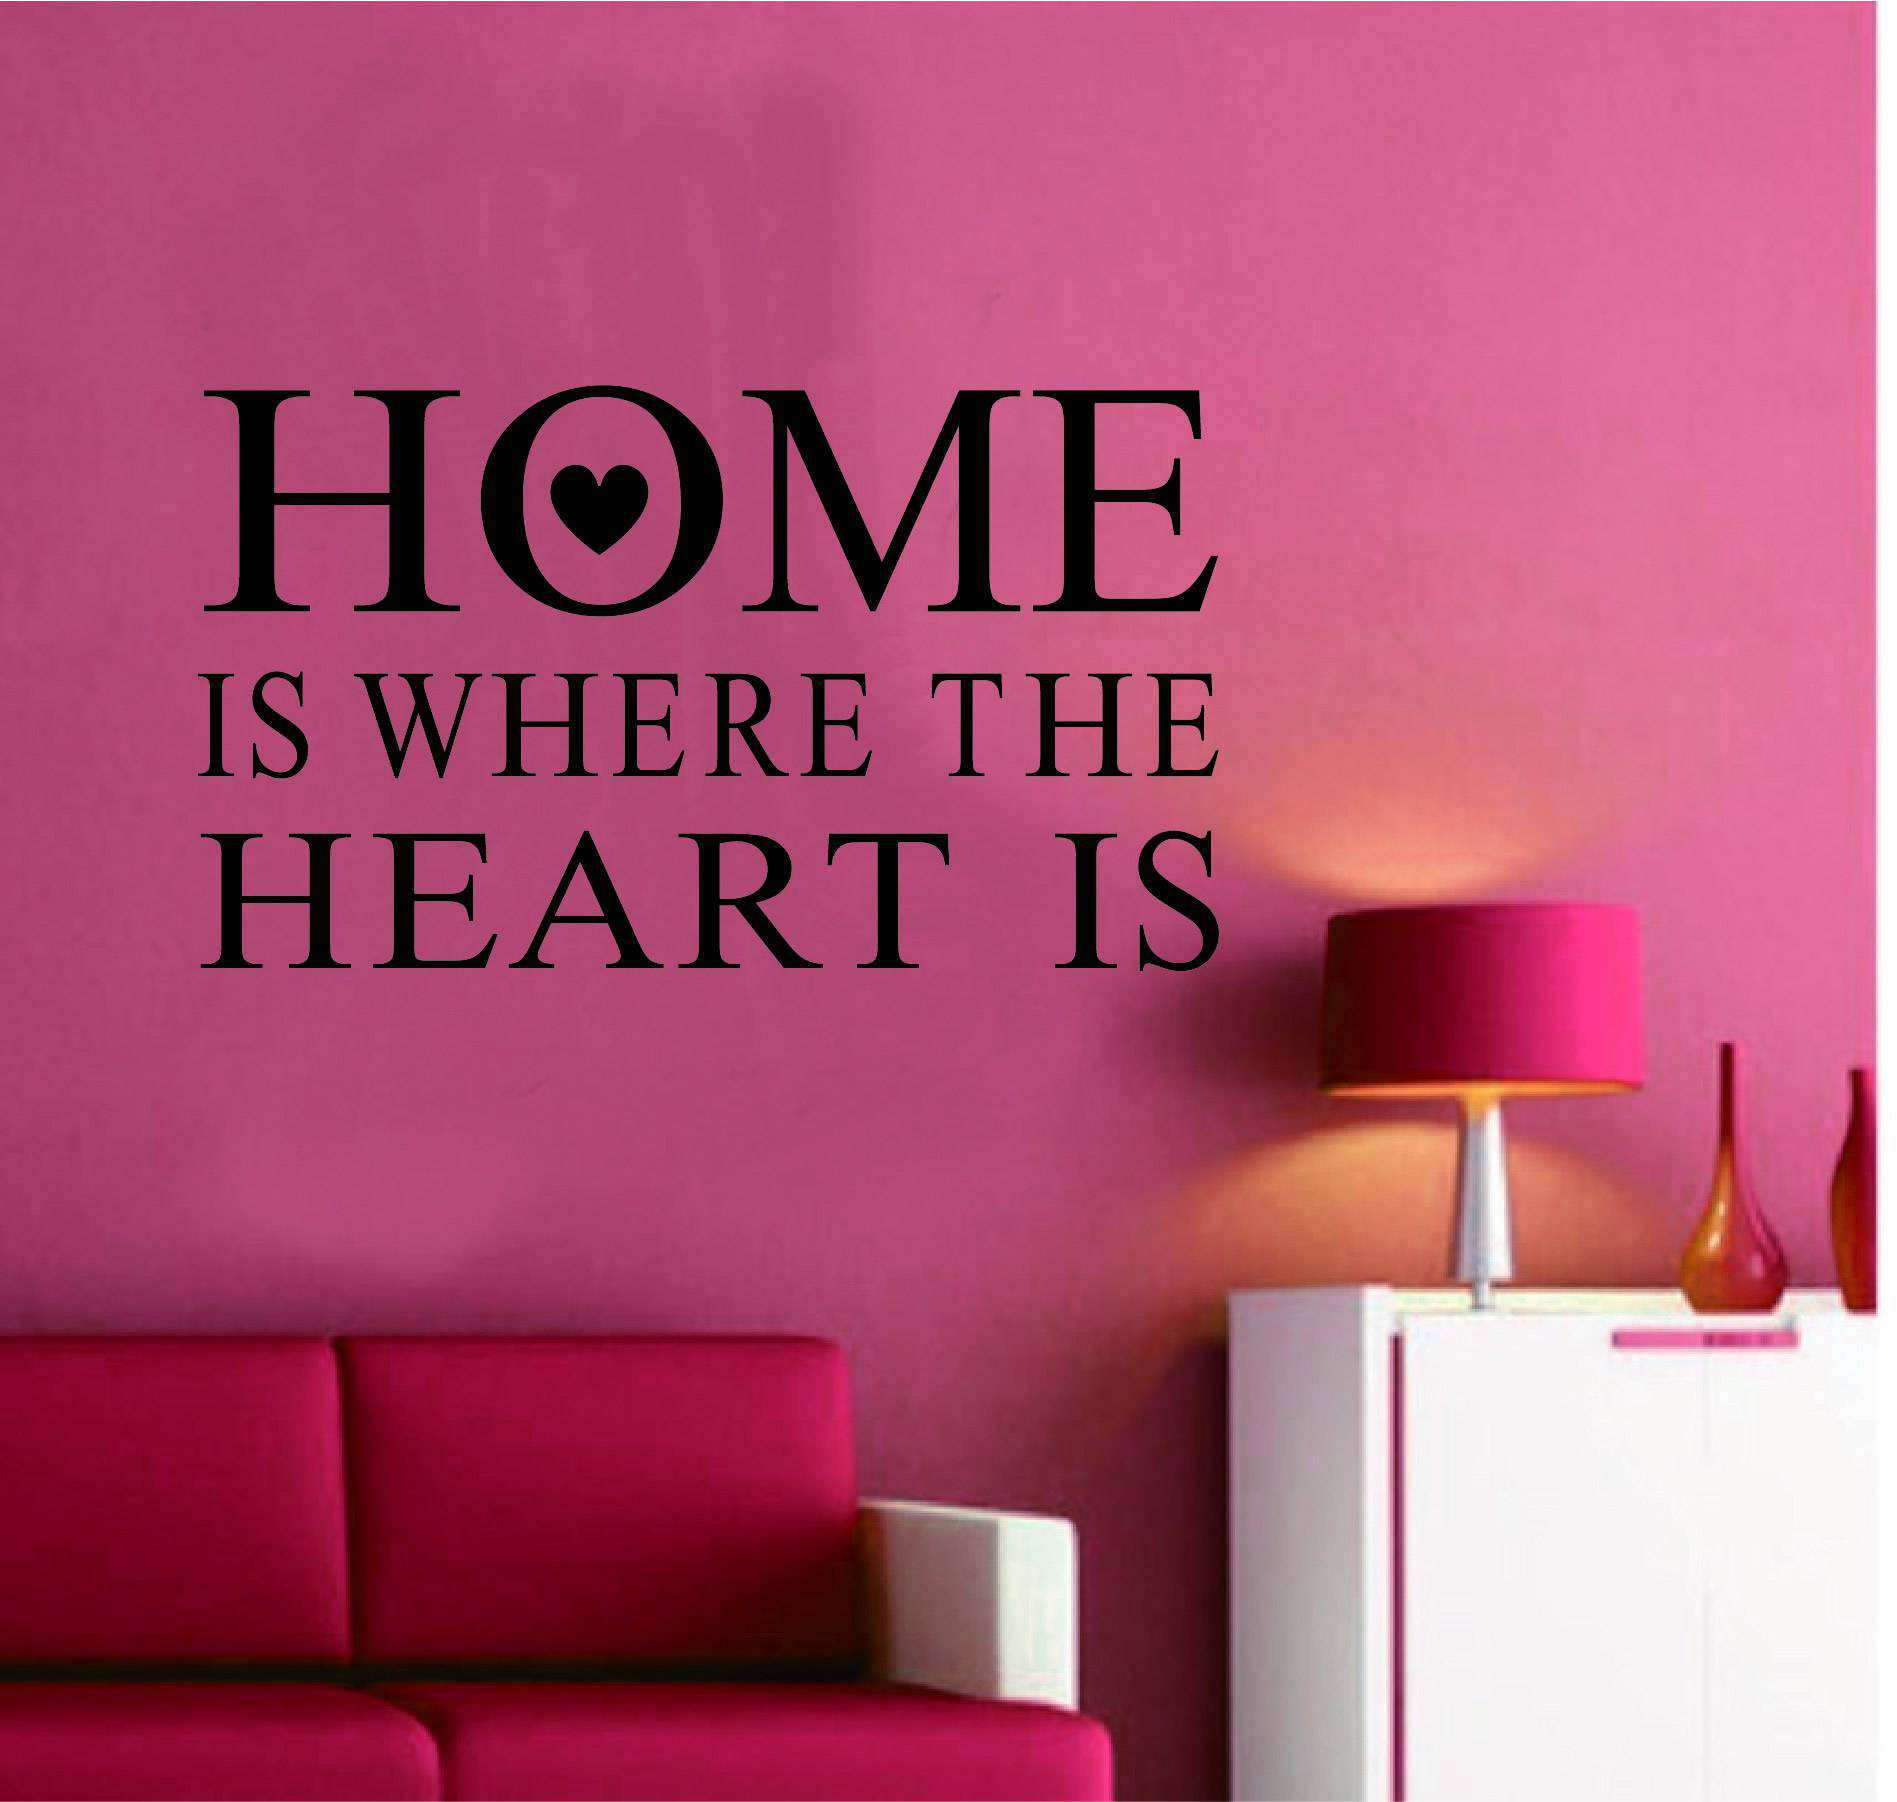 Home Is Where The Heart Is Quote Home Is Where The Heart Is Quotes Wall Quotes Sticker Decal  Wall